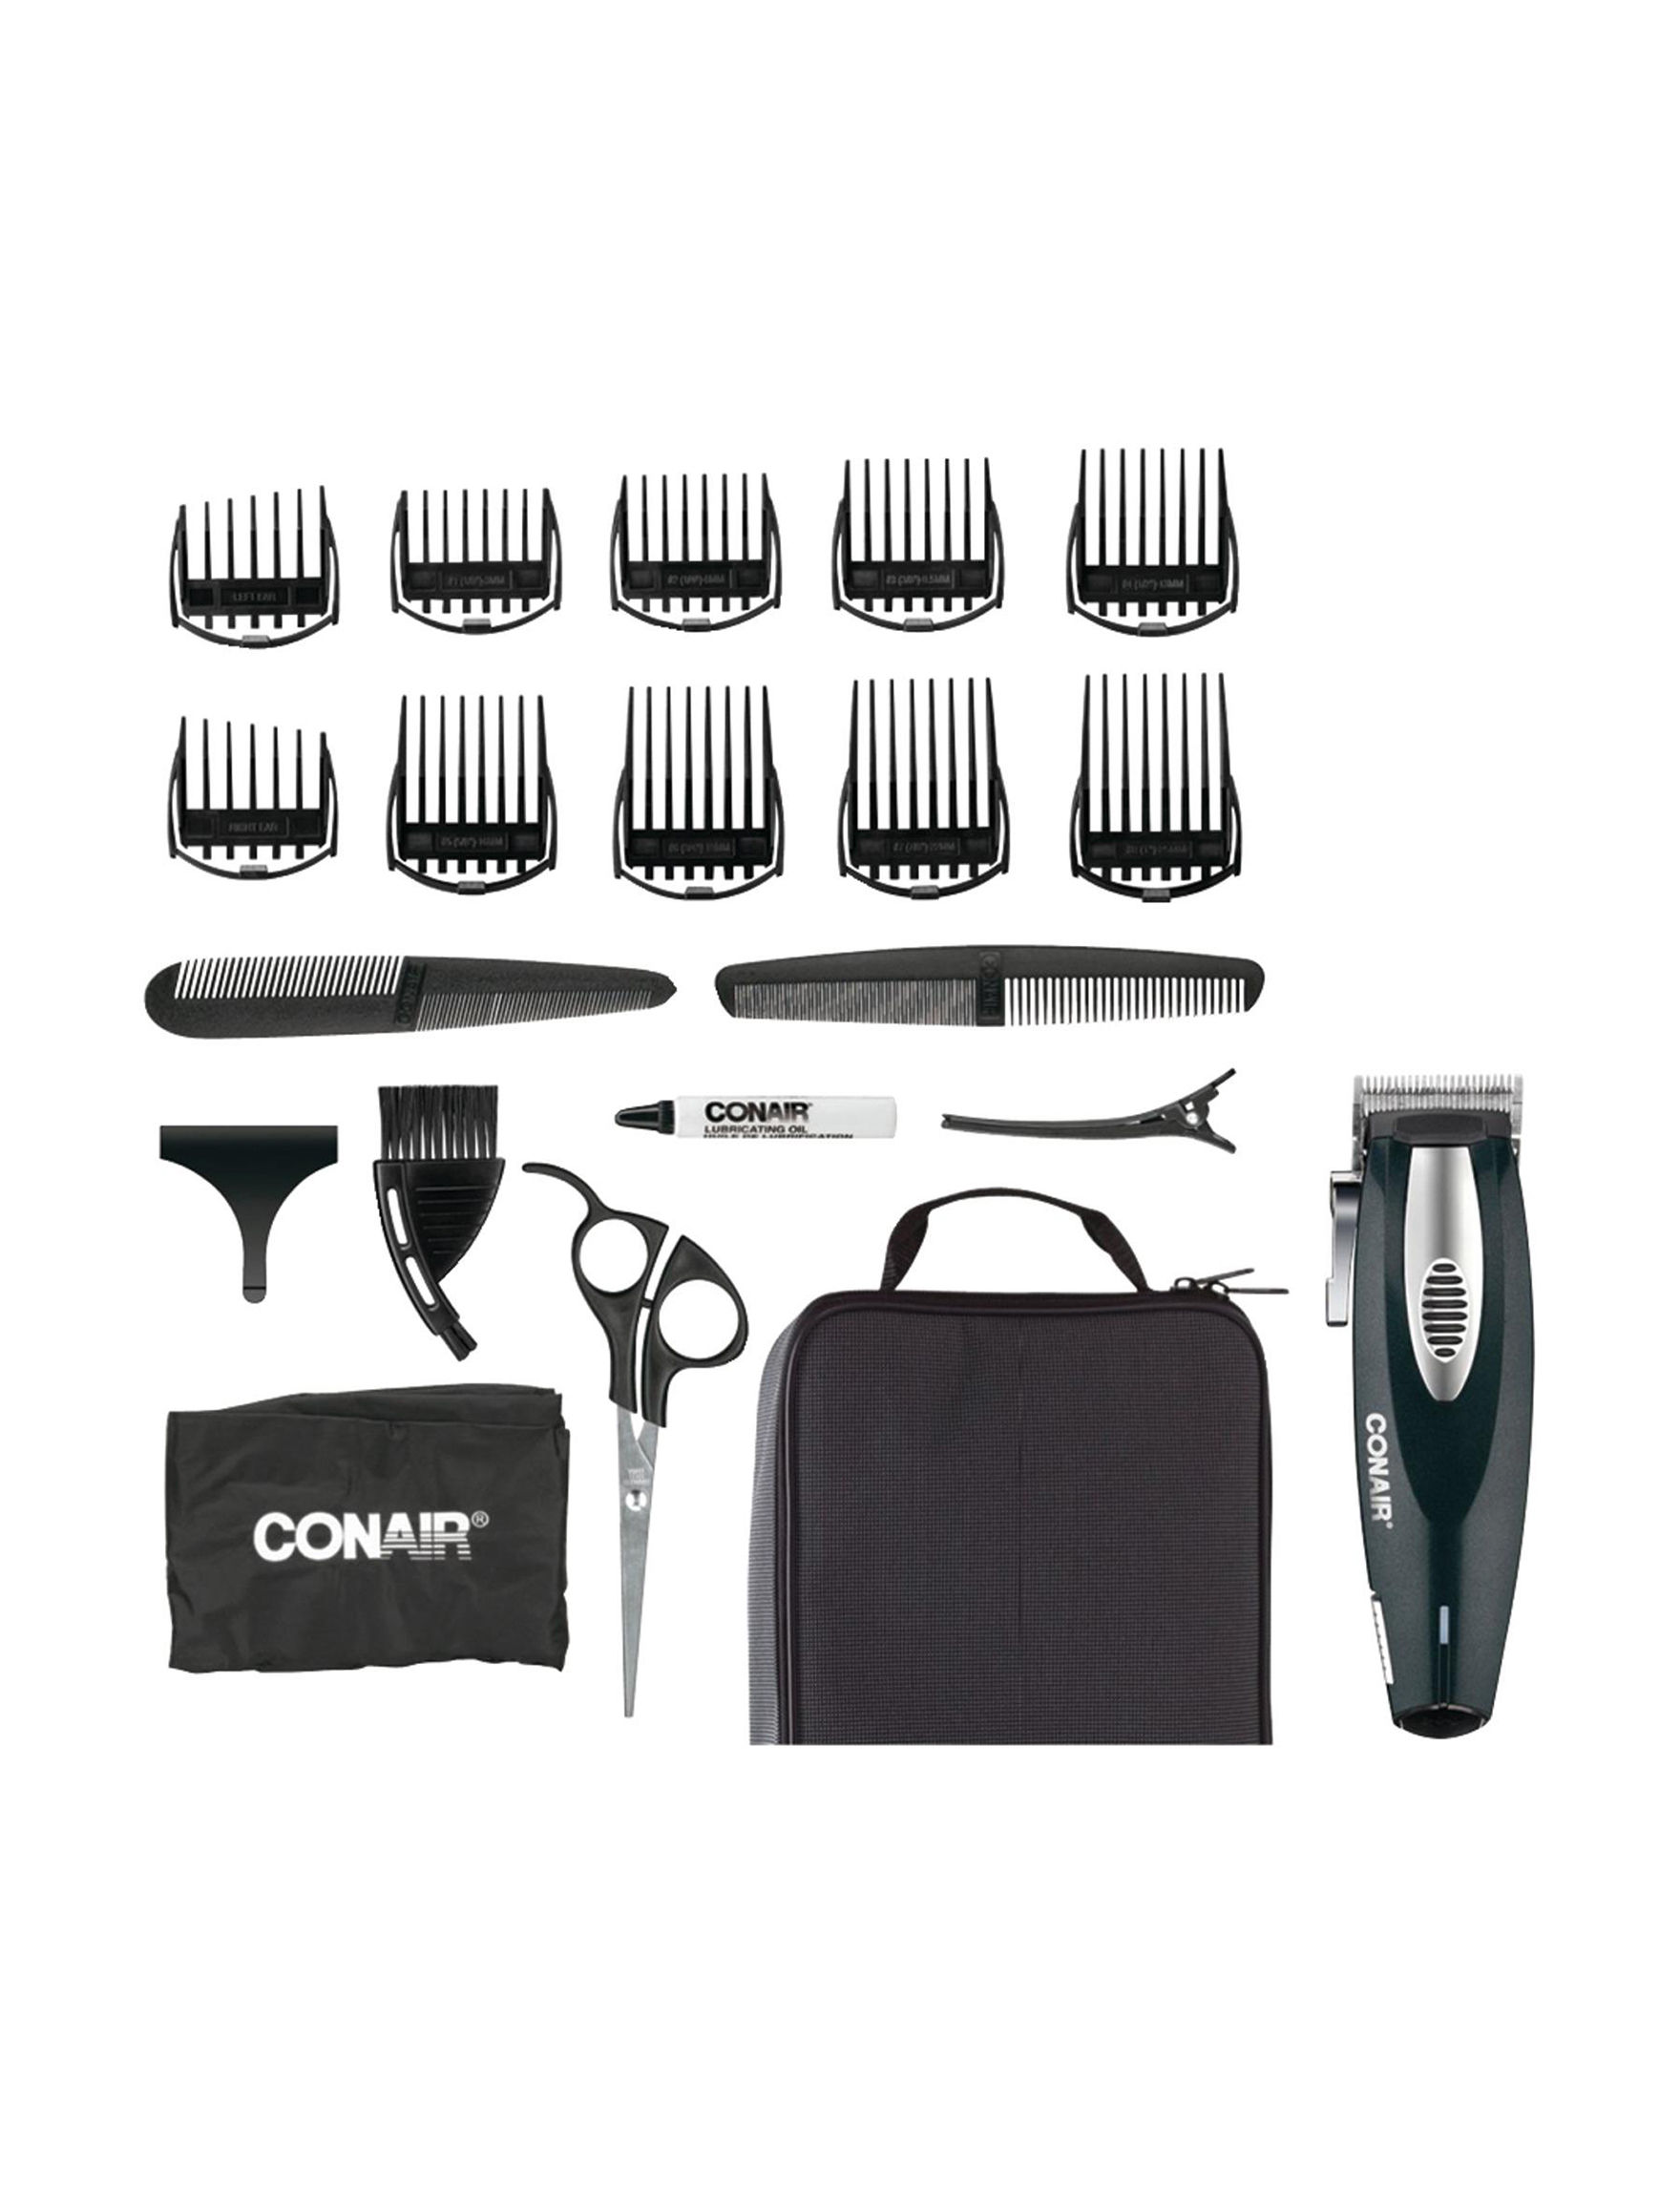 Conair Black Hairstyling Products Hairstyling Tools Tools & Brushes Bath Accessory Sets Bath Accessories